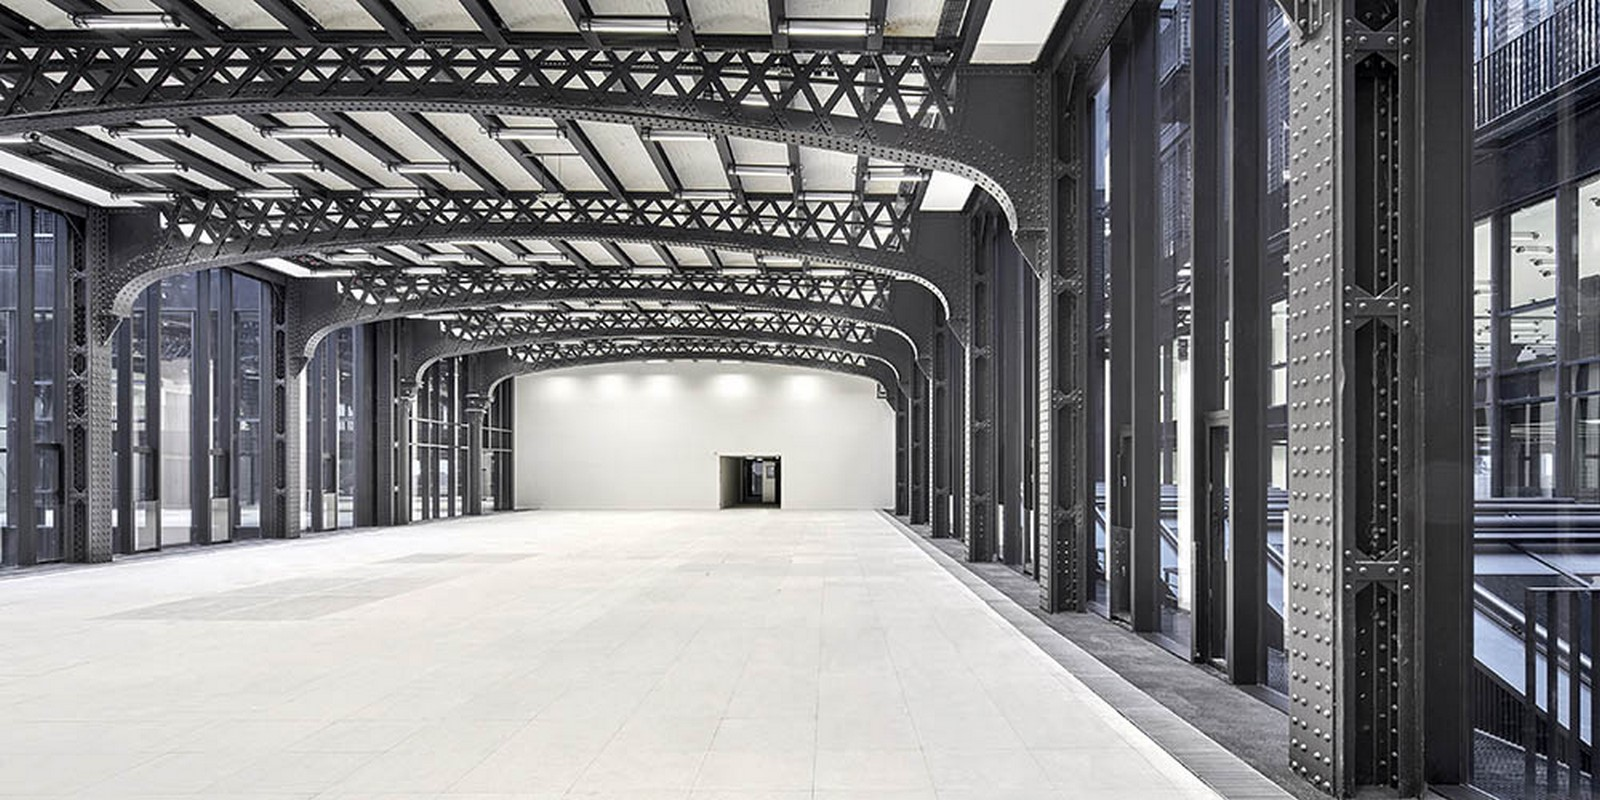 Paris' Industrial Post Office Building converted into A Mixed-Use Block by Dominique Perrault Architecture - Sheet4